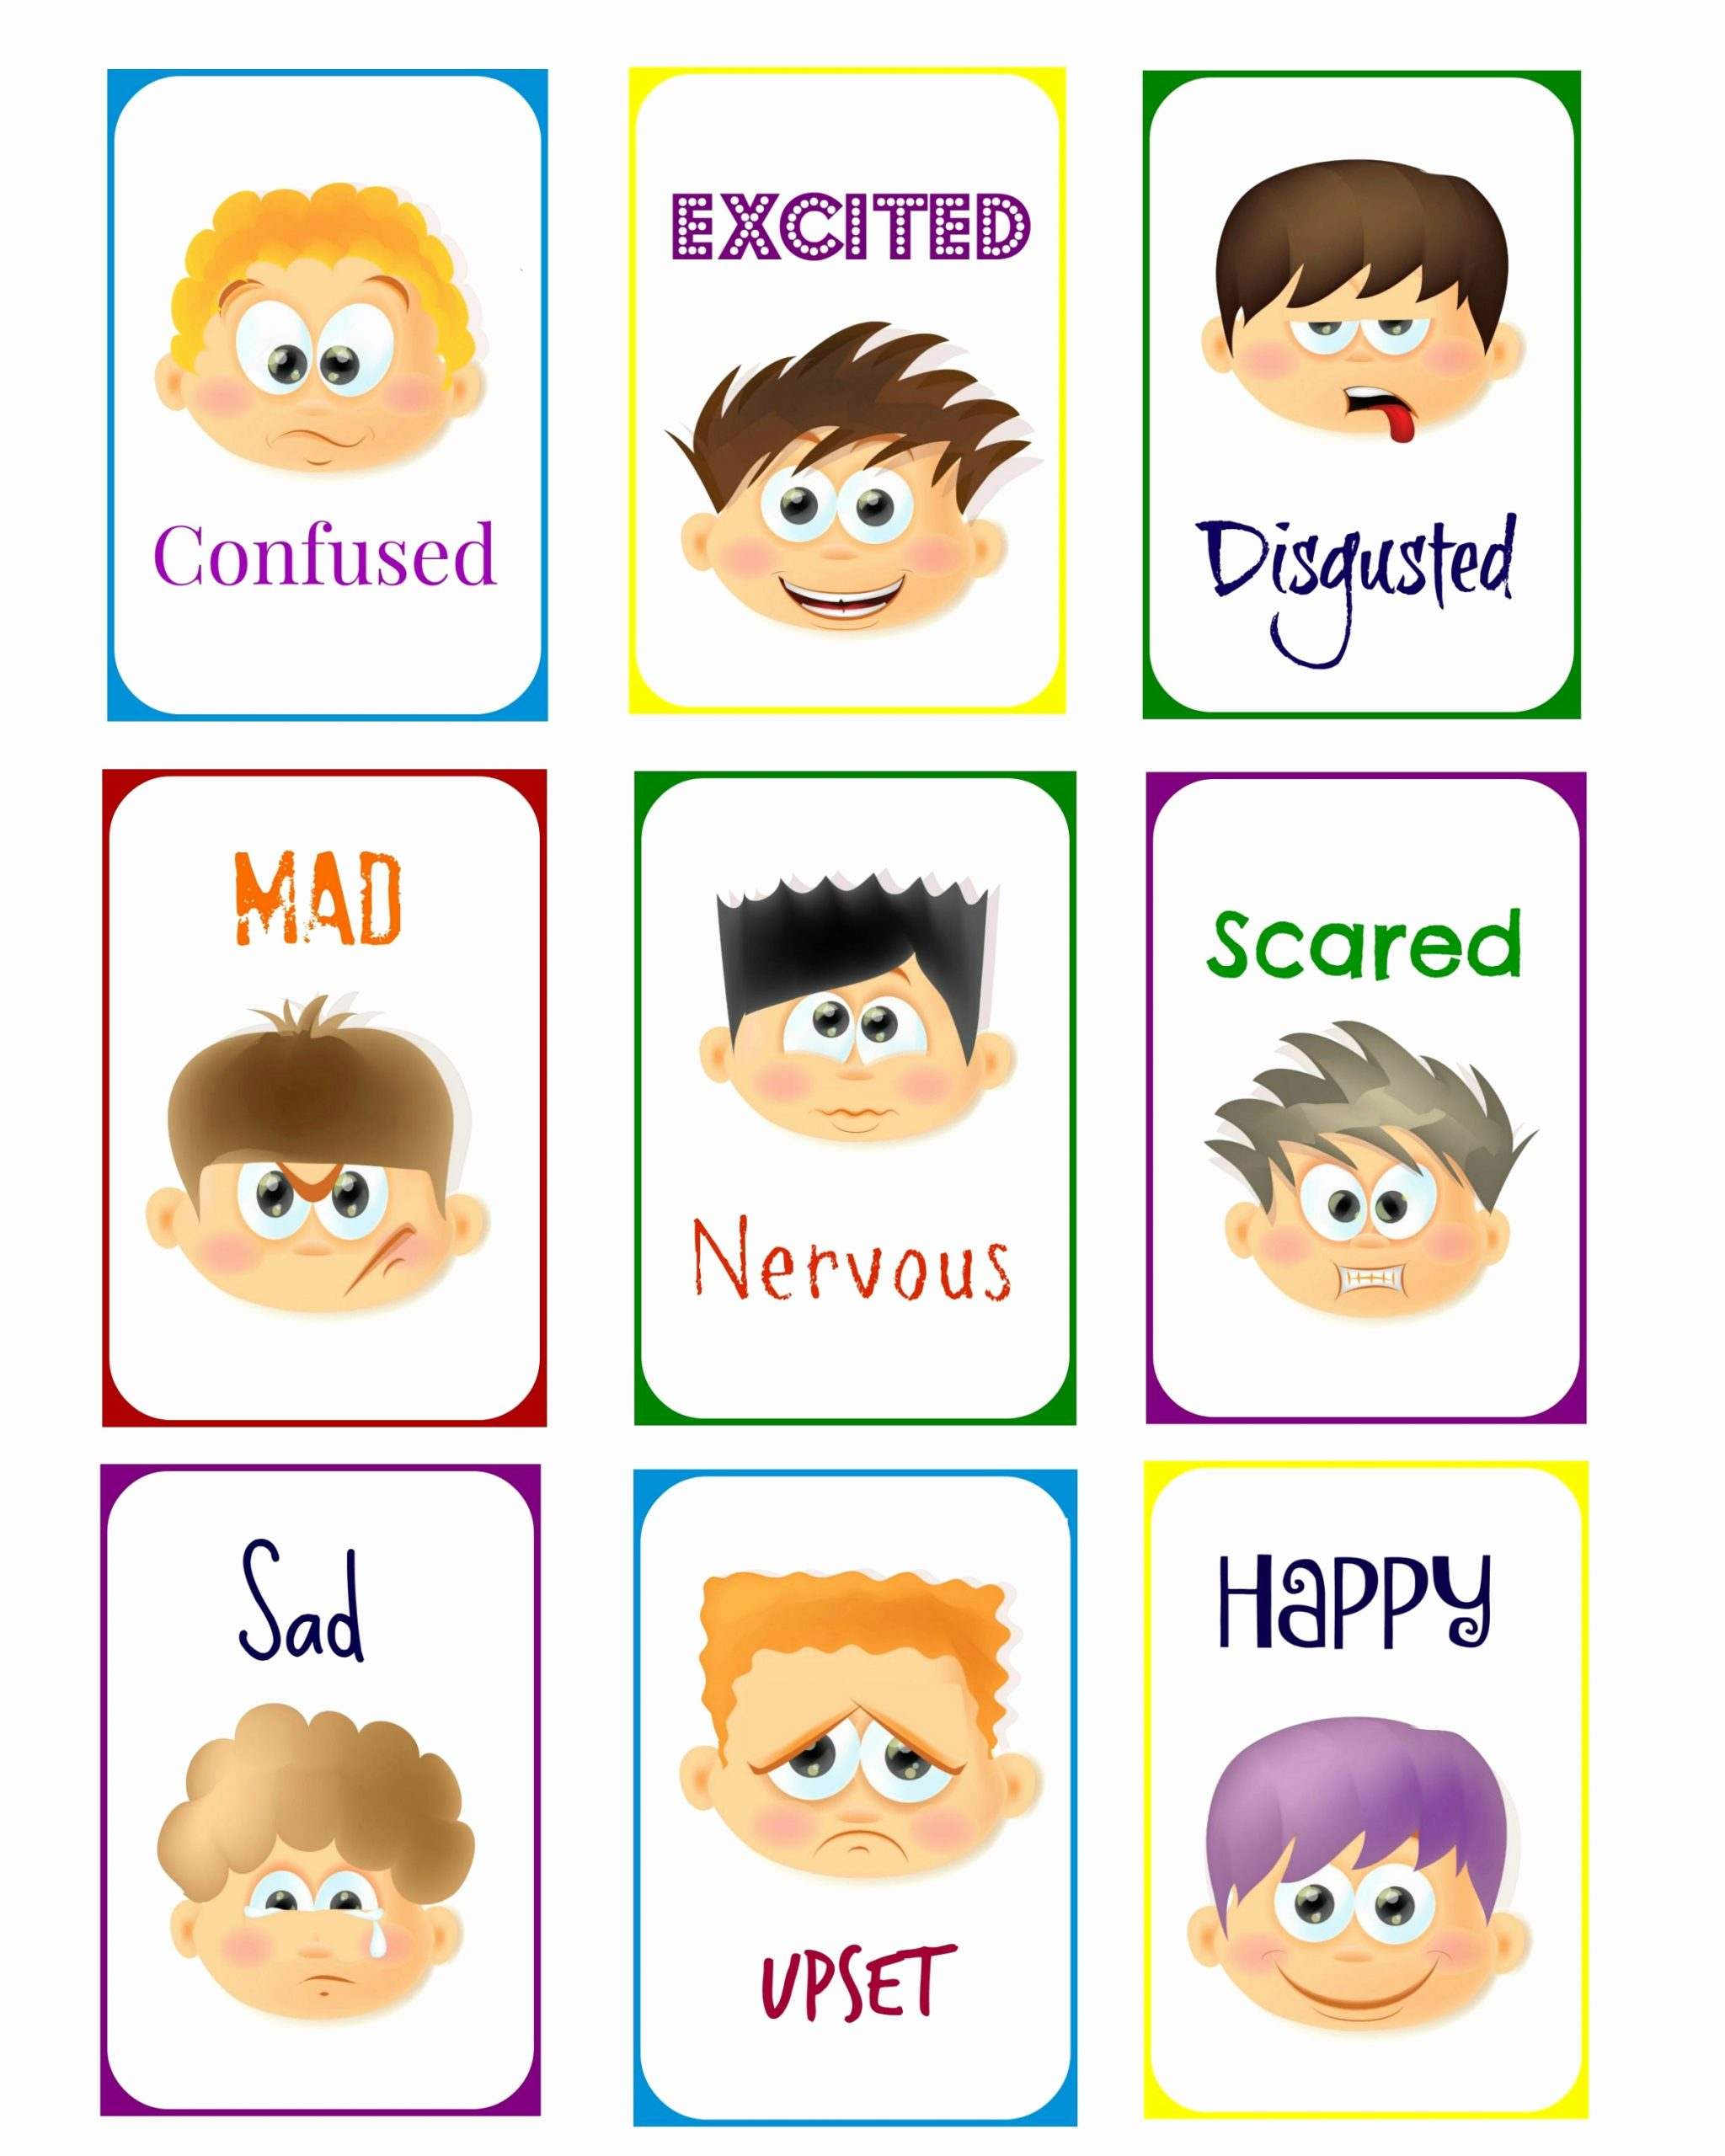 Emotions Worksheets for Preschoolers Beautiful Exclusive Content for Subscribers